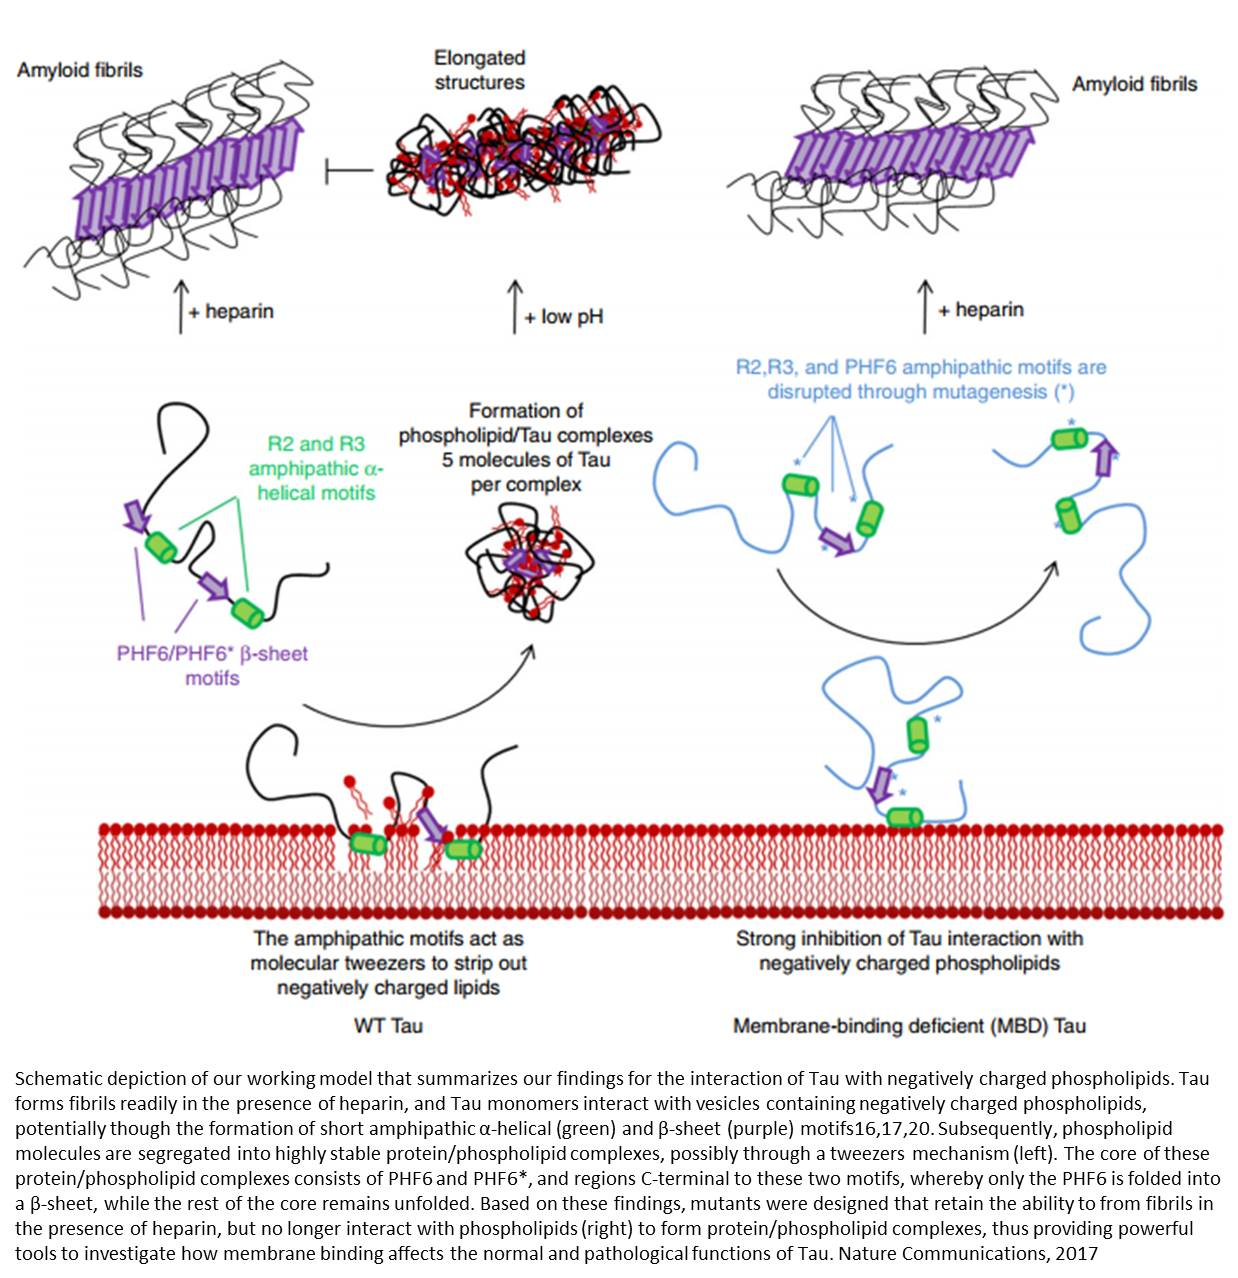 Alzheimer's Tau protein interaction with cell membranes to form toxic complexes